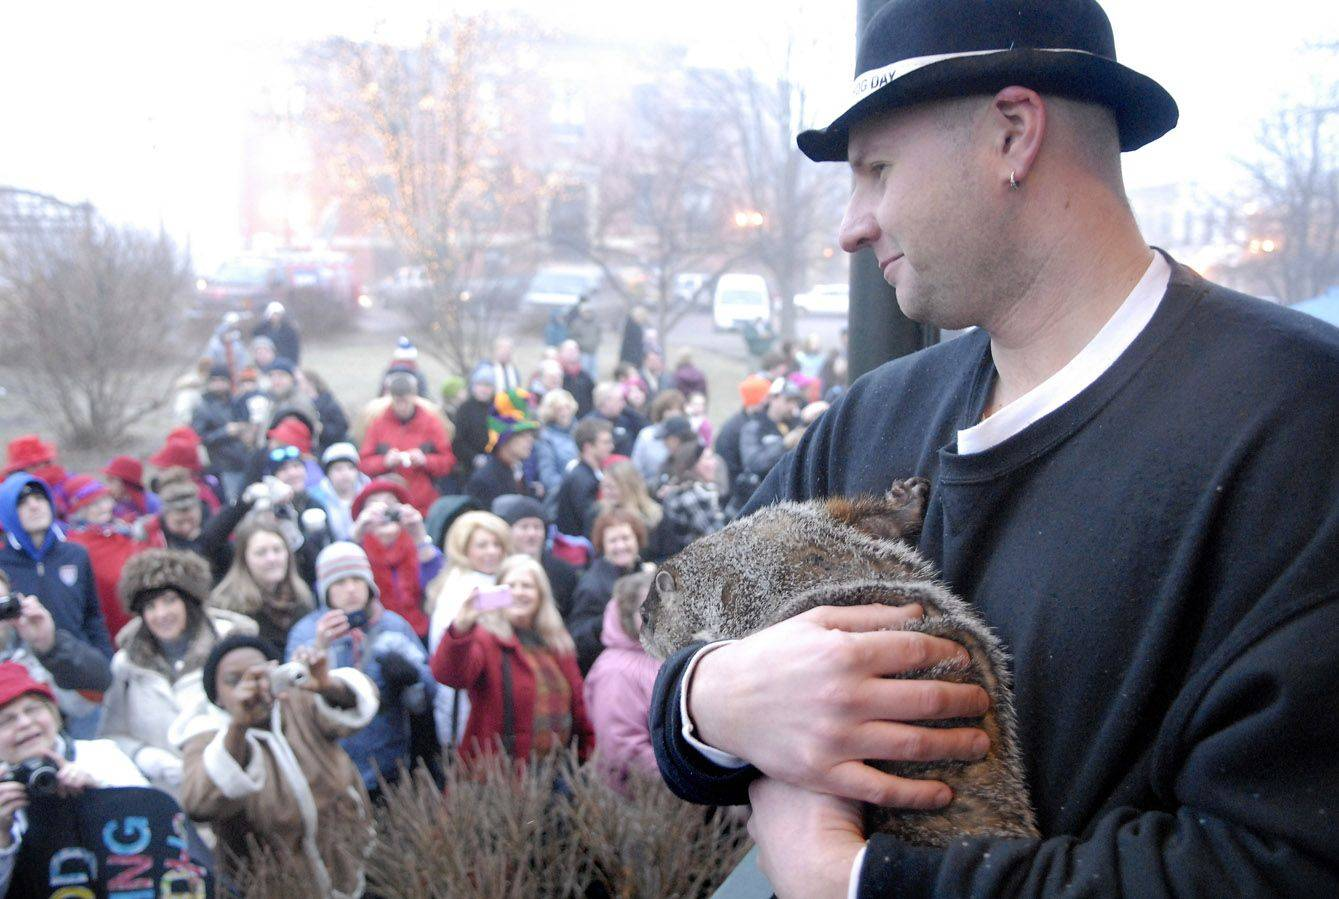 Animal handler Mark Szafarn of Chicago holds Woodstock Willie for the crowd to photograph at the annual Groundhog Day extravaganza Thursday morning in Woodstock.